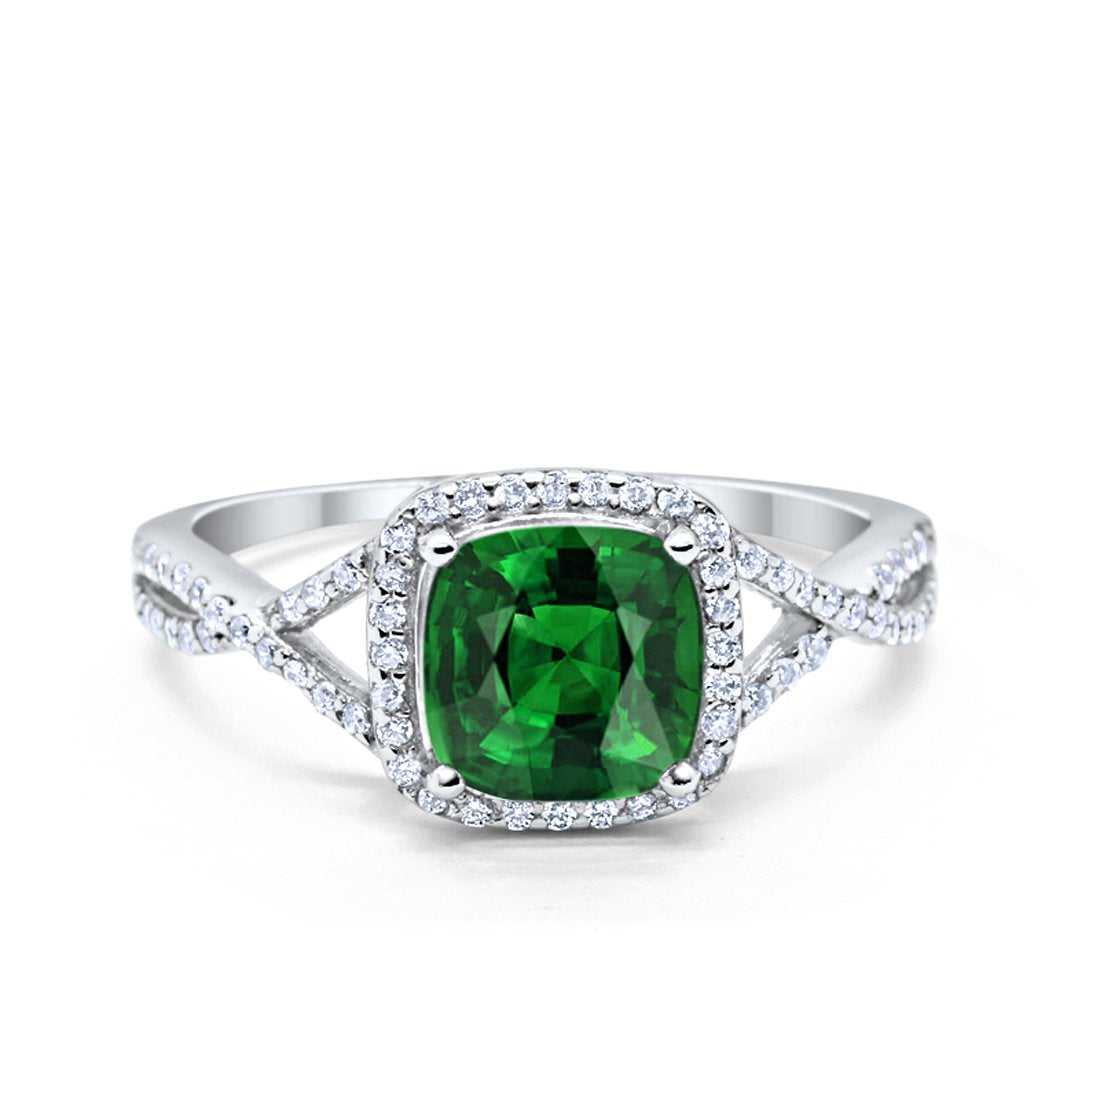 Halo Infinity Shank Engagement Ring Cushion Round Simulated Green Emerald CZ 925 Sterling Silver